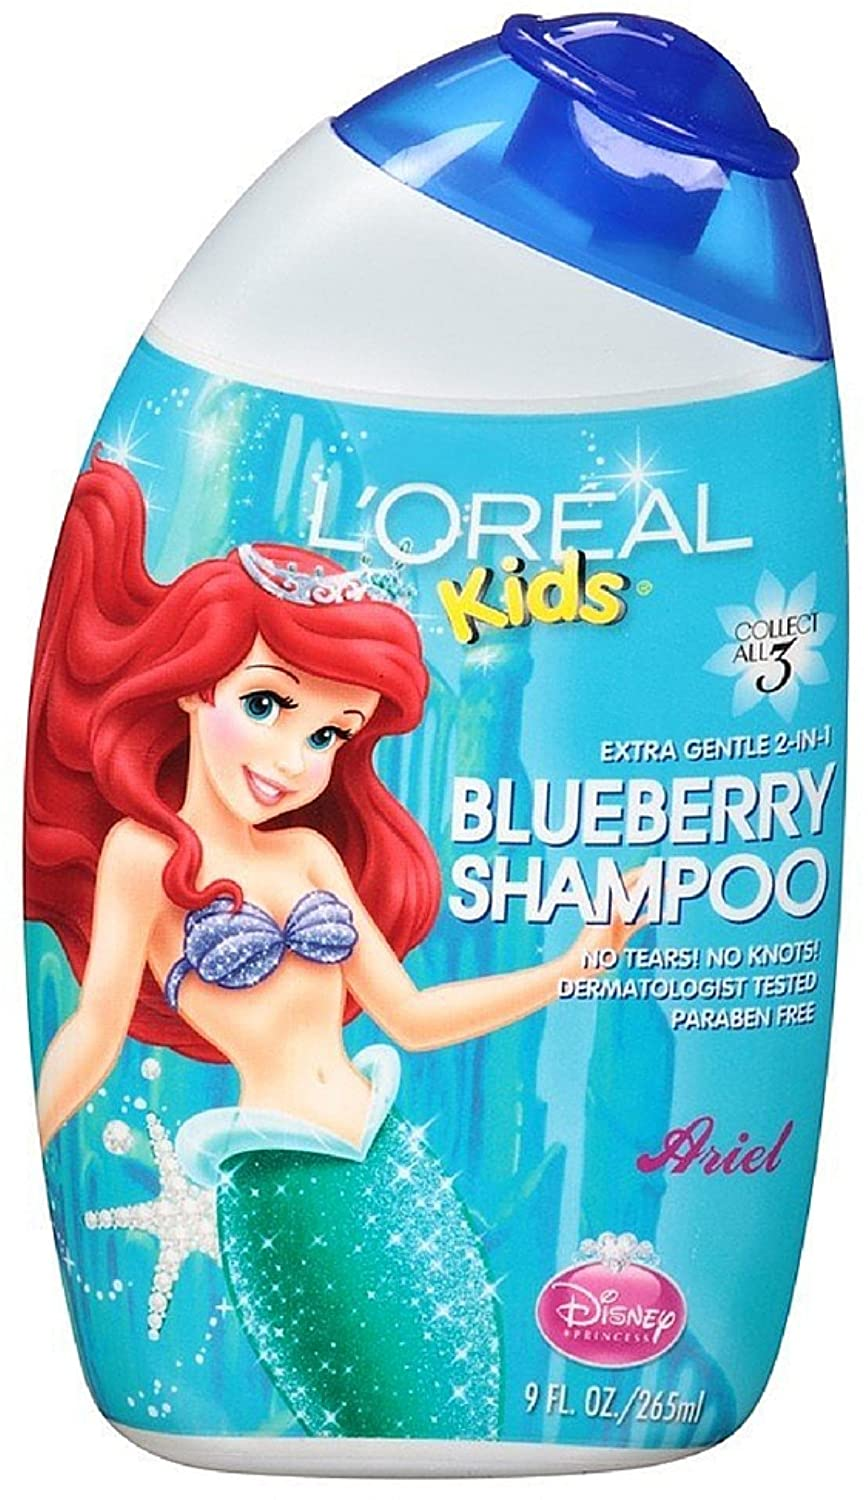 Loreal Kids Extra Gentle 2 In 1 Shampoo Royal Sunny Orange 265ml Blueberry 9 Oz Pack Of 8 Beauty